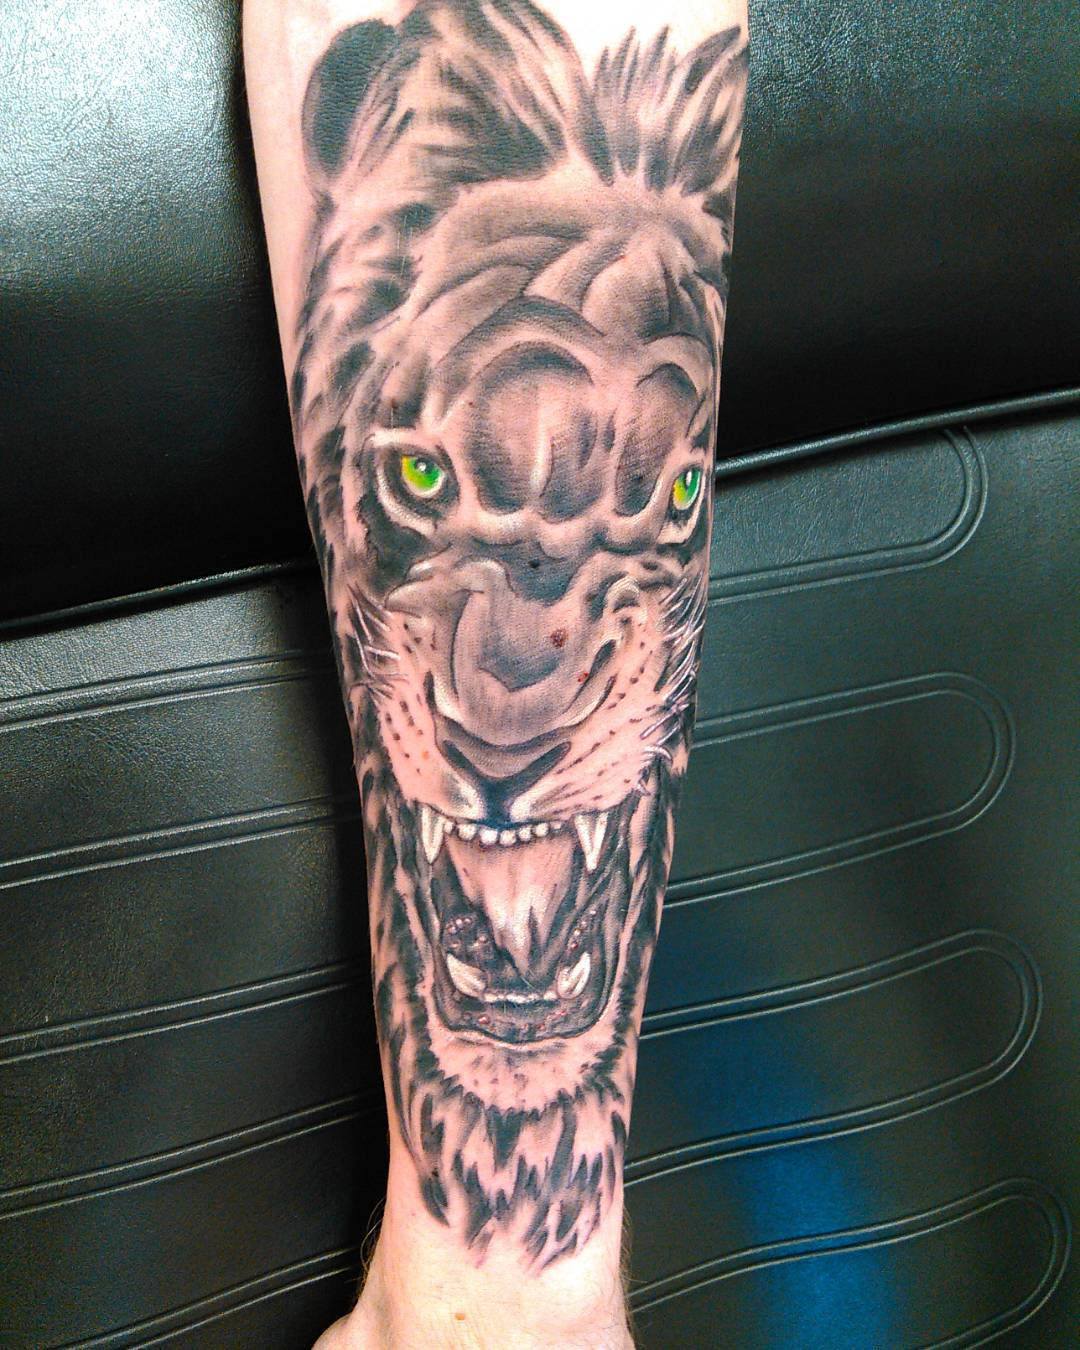 110+ Best Wild Lion Tattoo Designs & Meanings - Choose